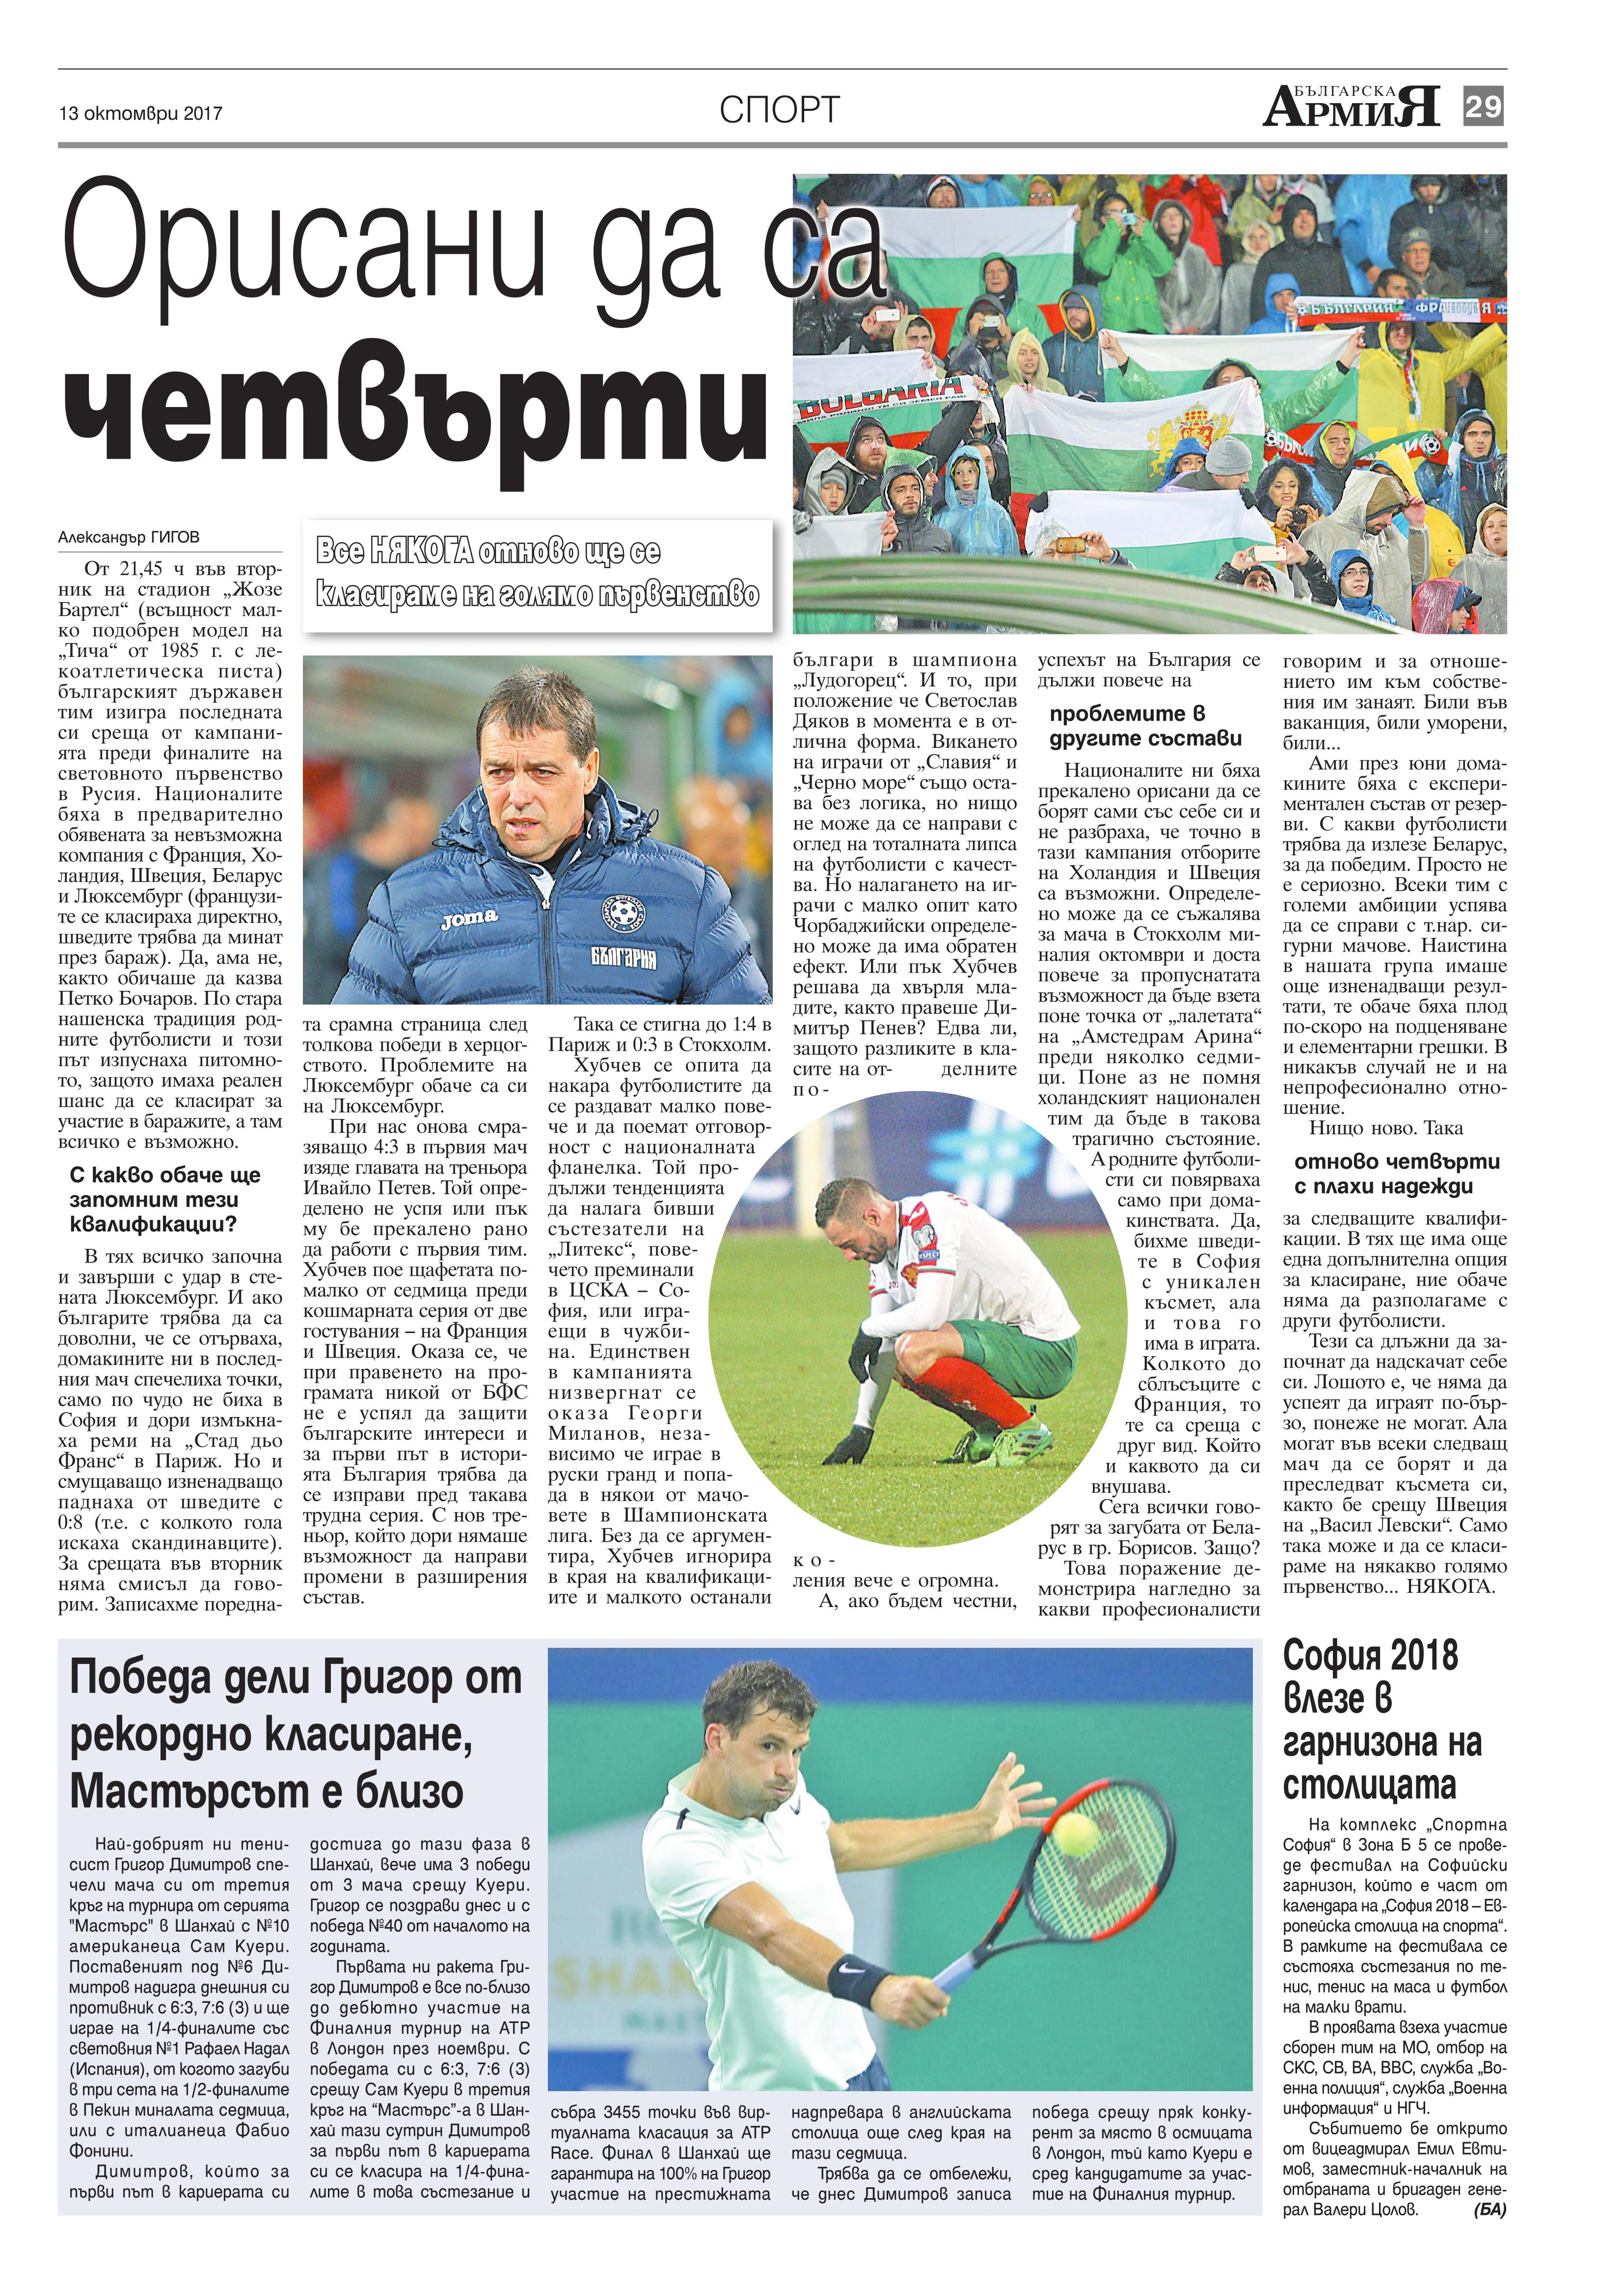 http://armymedia.bg/wp-content/uploads/2015/06/29.page1_-30.jpg